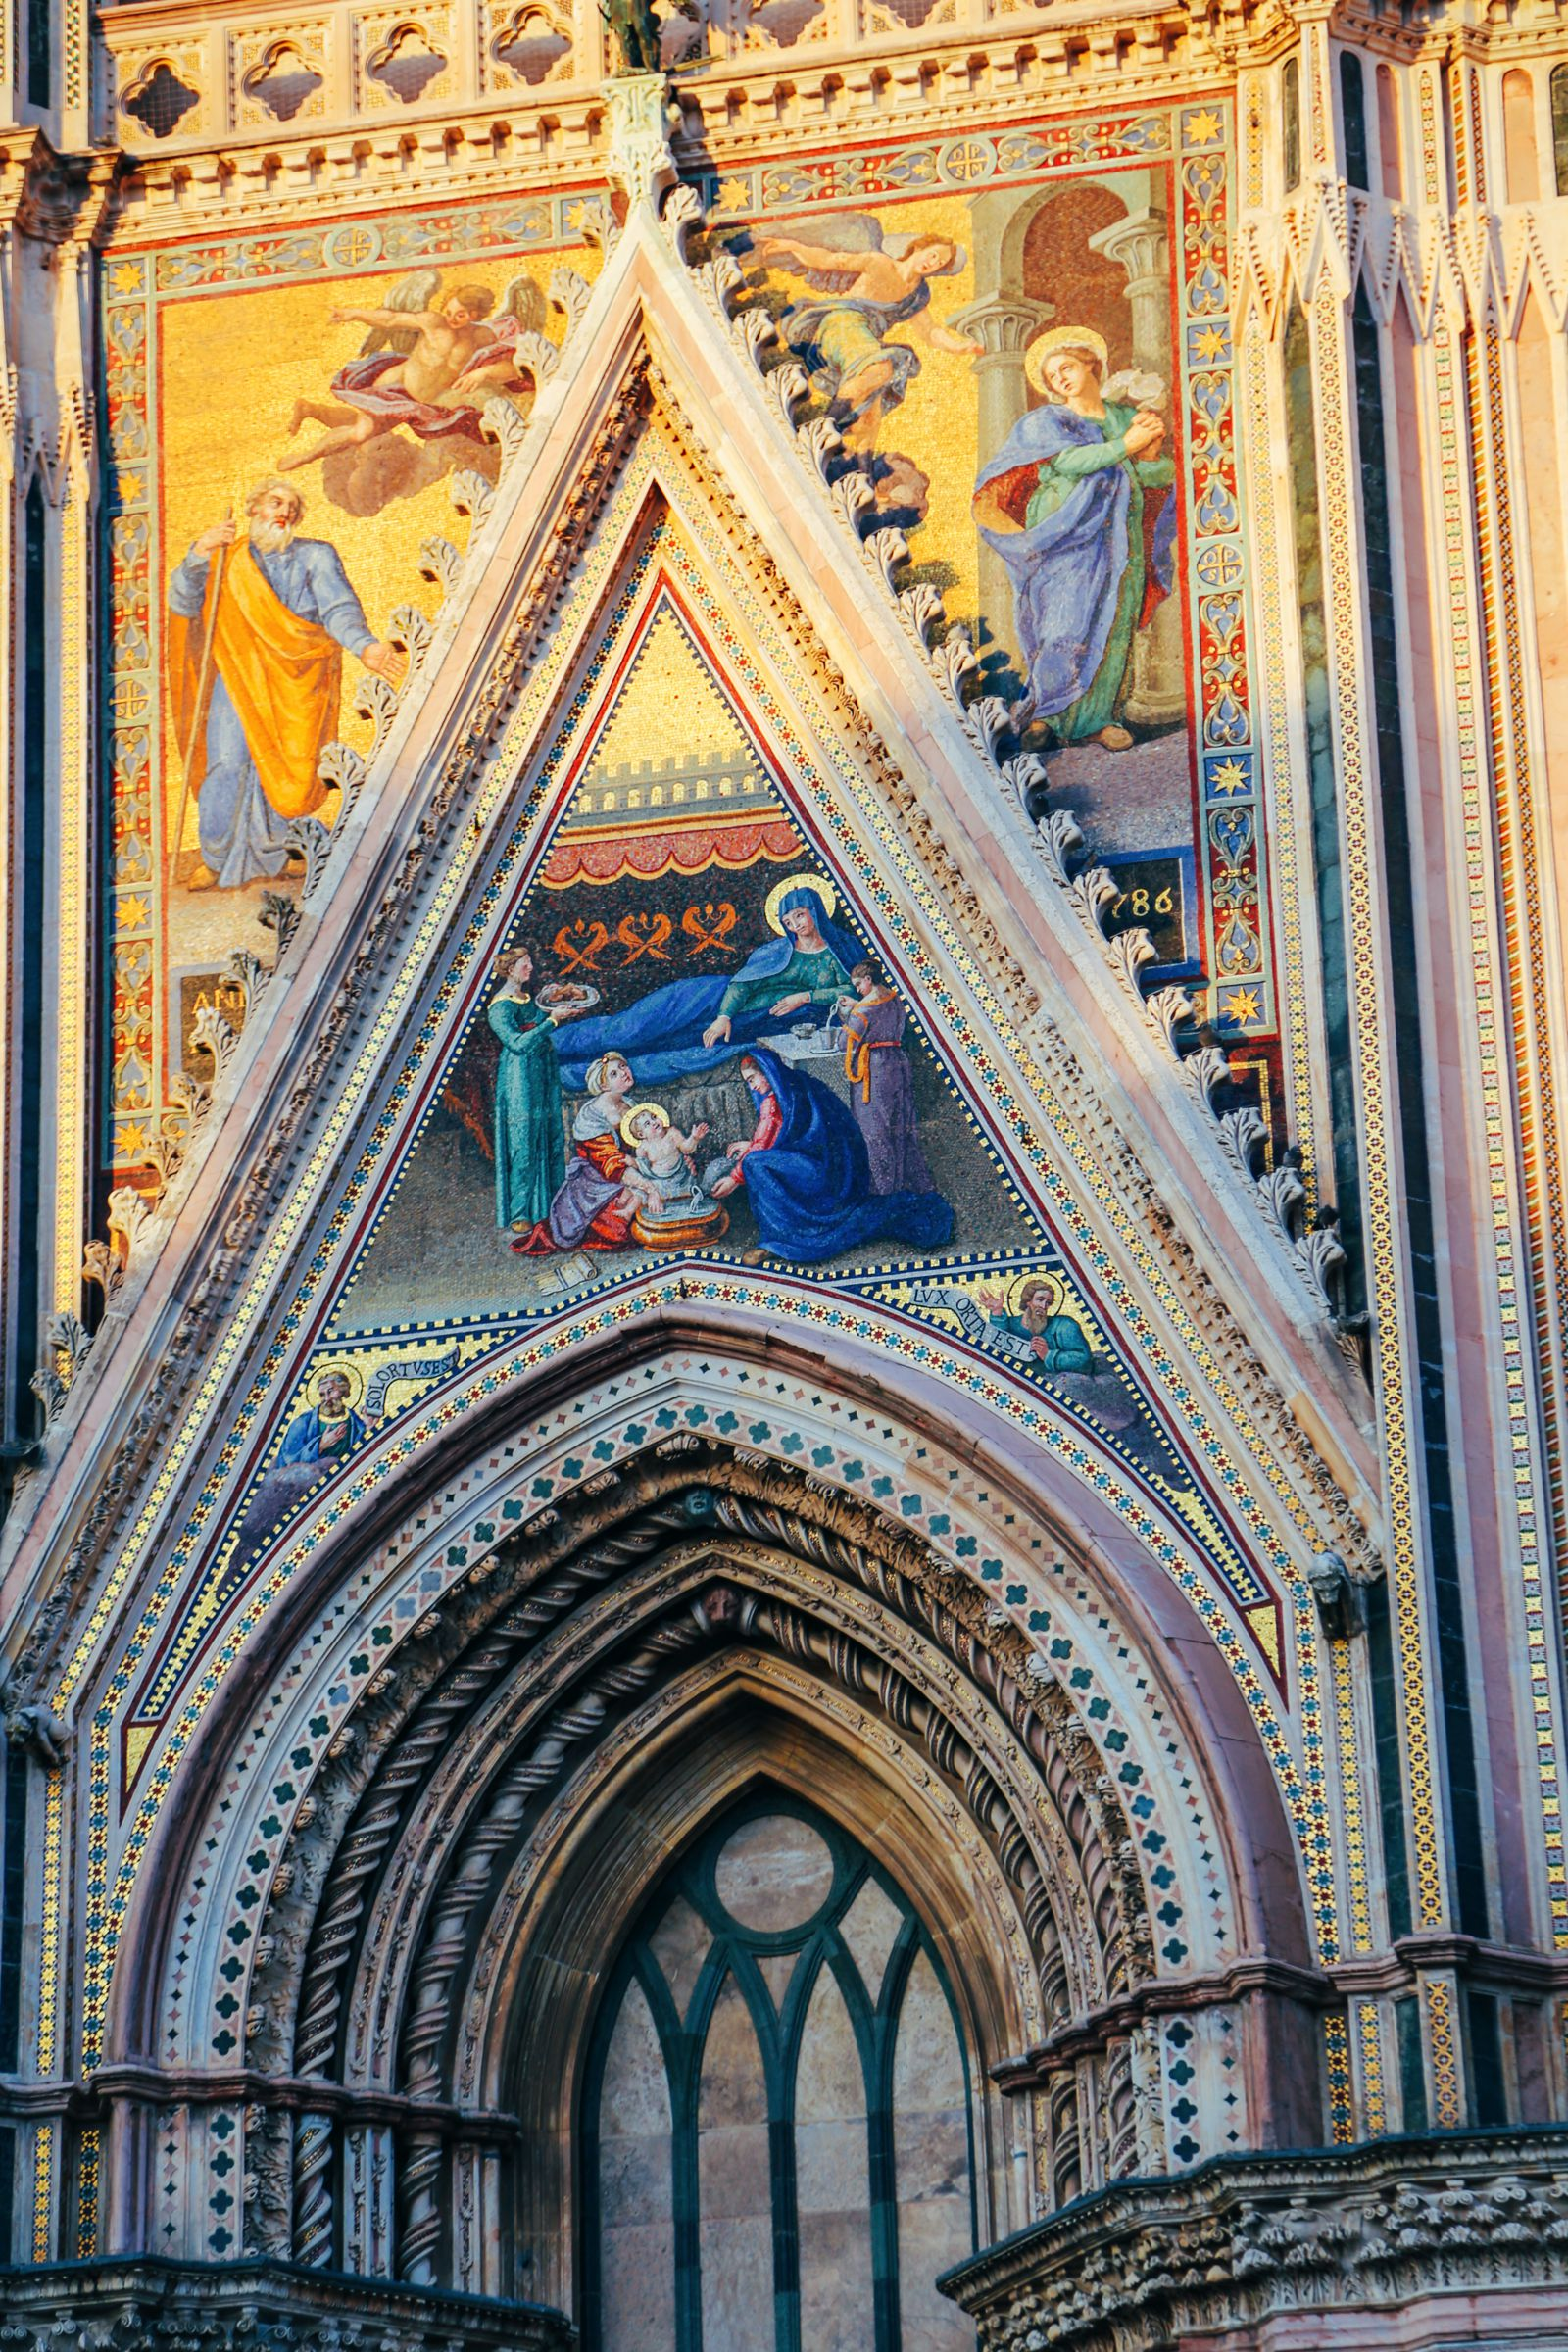 Orvieto - The Most Dramatic City In Europe (17)